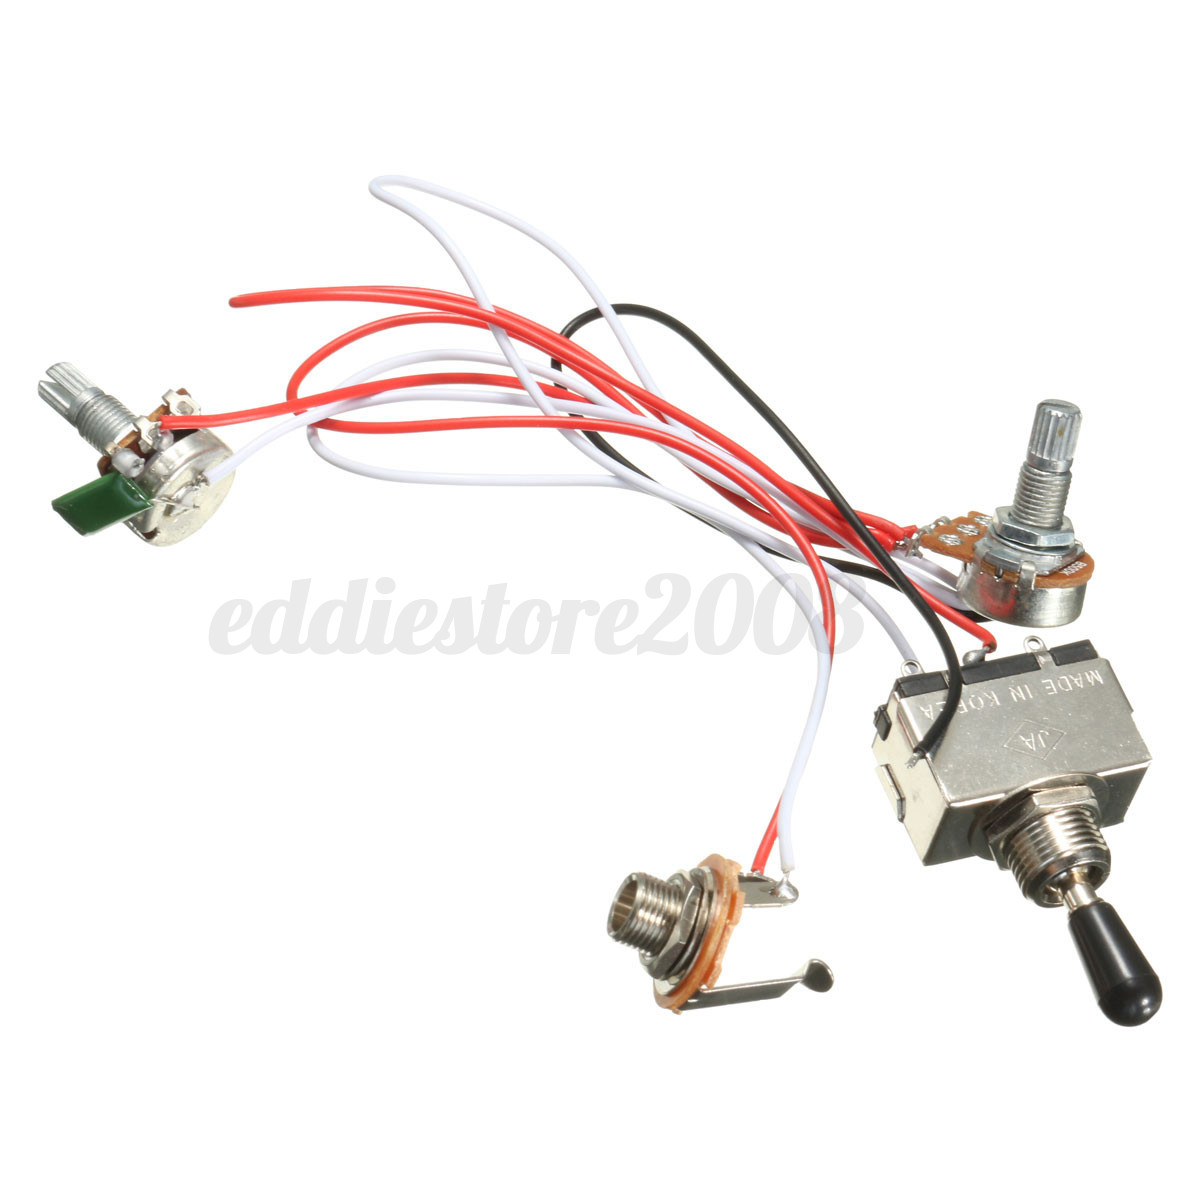 hight resolution of electric guitar 3 way toggle switch wiring harness kit 1 volume 1 tone 500k 4 4 of 9